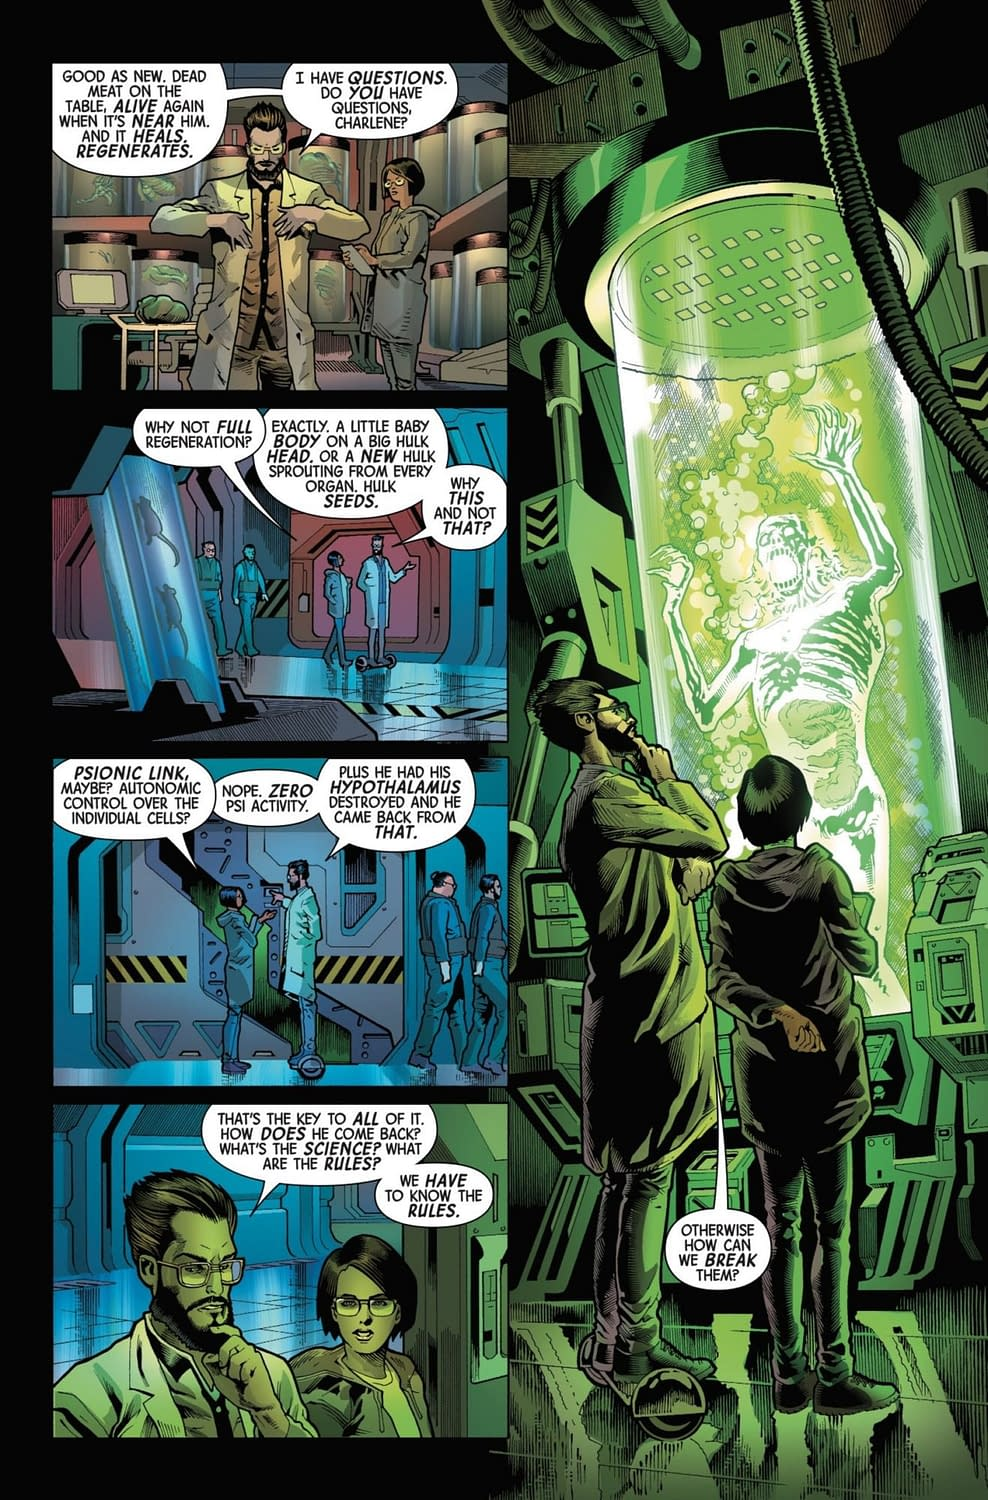 The Death of Civility in Next Week's Immortal Hulk #8